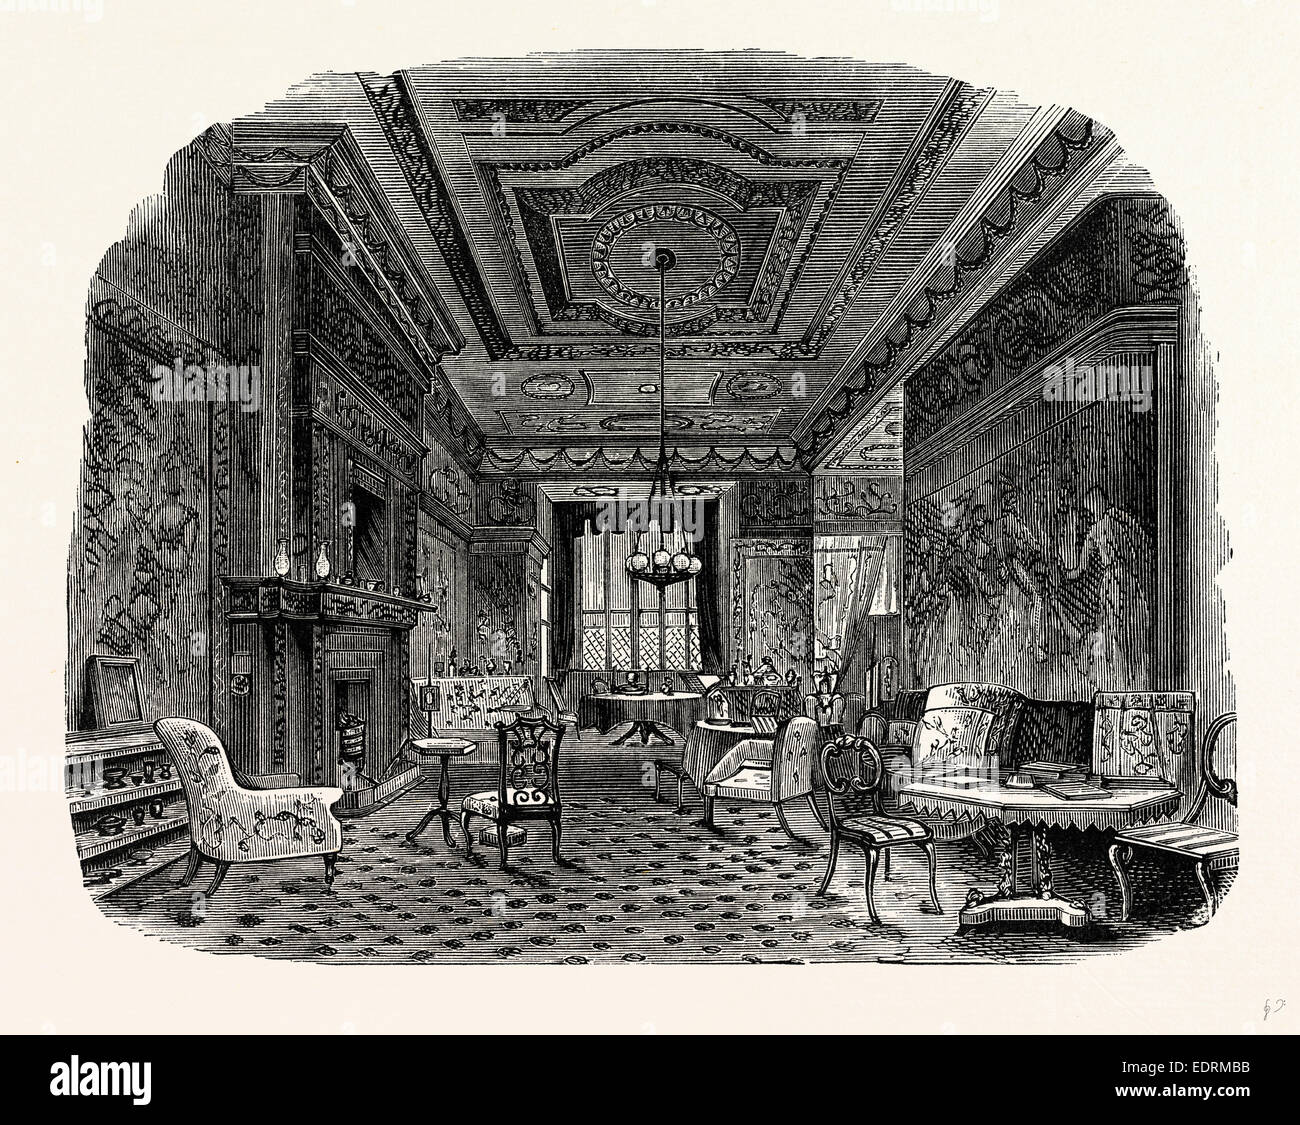 The Saloon, Westwood Park, UK, England, engraving 1870s, Britain - Stock Image